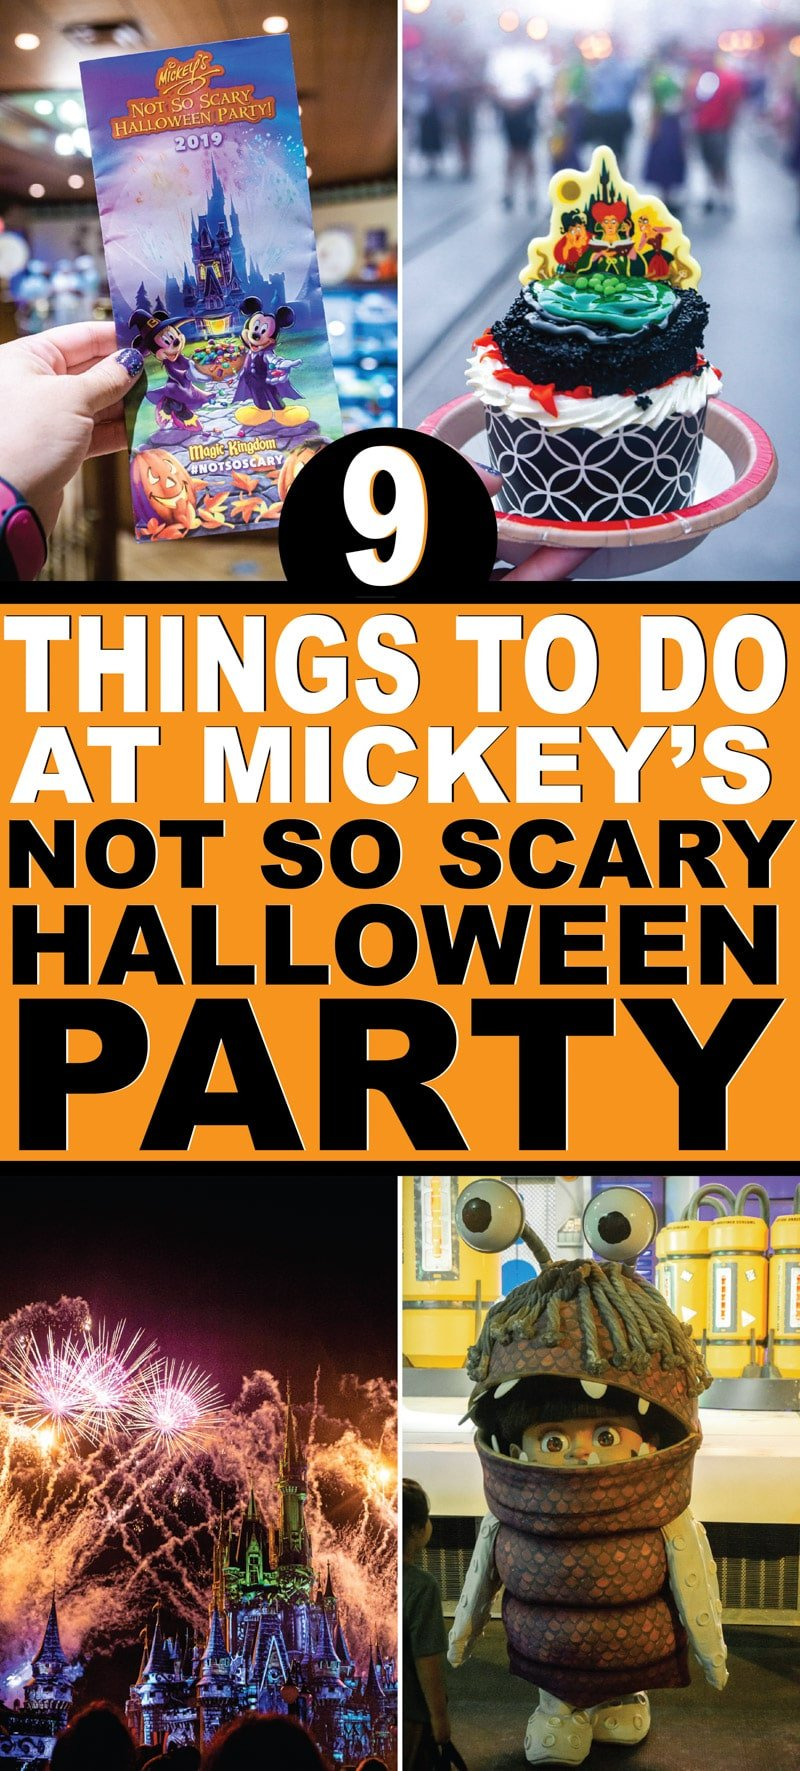 The ultimate guide to the 2019 Mickey's not so scary Halloween party at Disney World! Everything from the rule on costumes, which food and desserts are best, who you can take pictures with, and of course some DIY costume and shirts you can make for the party! And don't forget all the insider tips for seeing the most characters and getting the most candy!